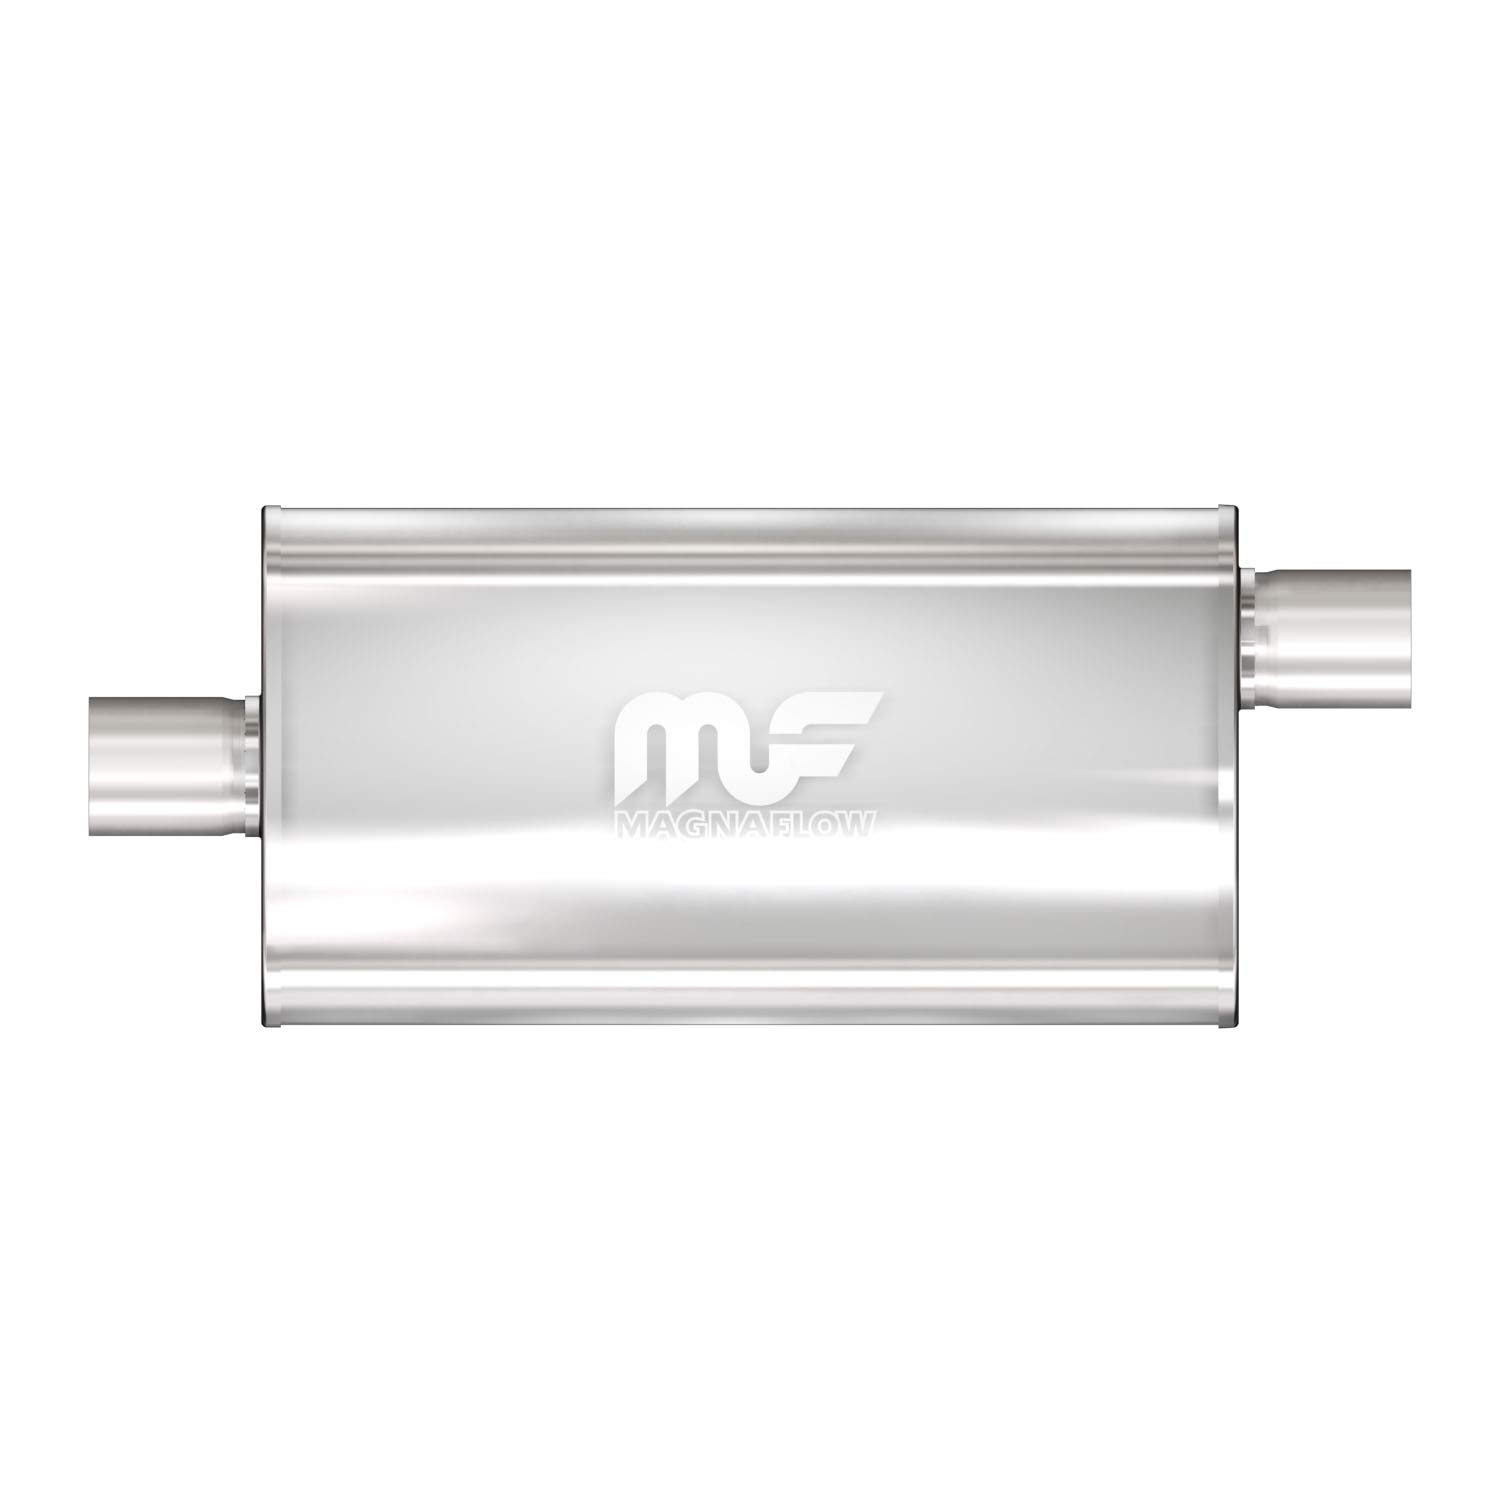 Magnaflow 12909 Stainless Steel 3.5' Oval Muffler MagnaFlow Exhaust Products